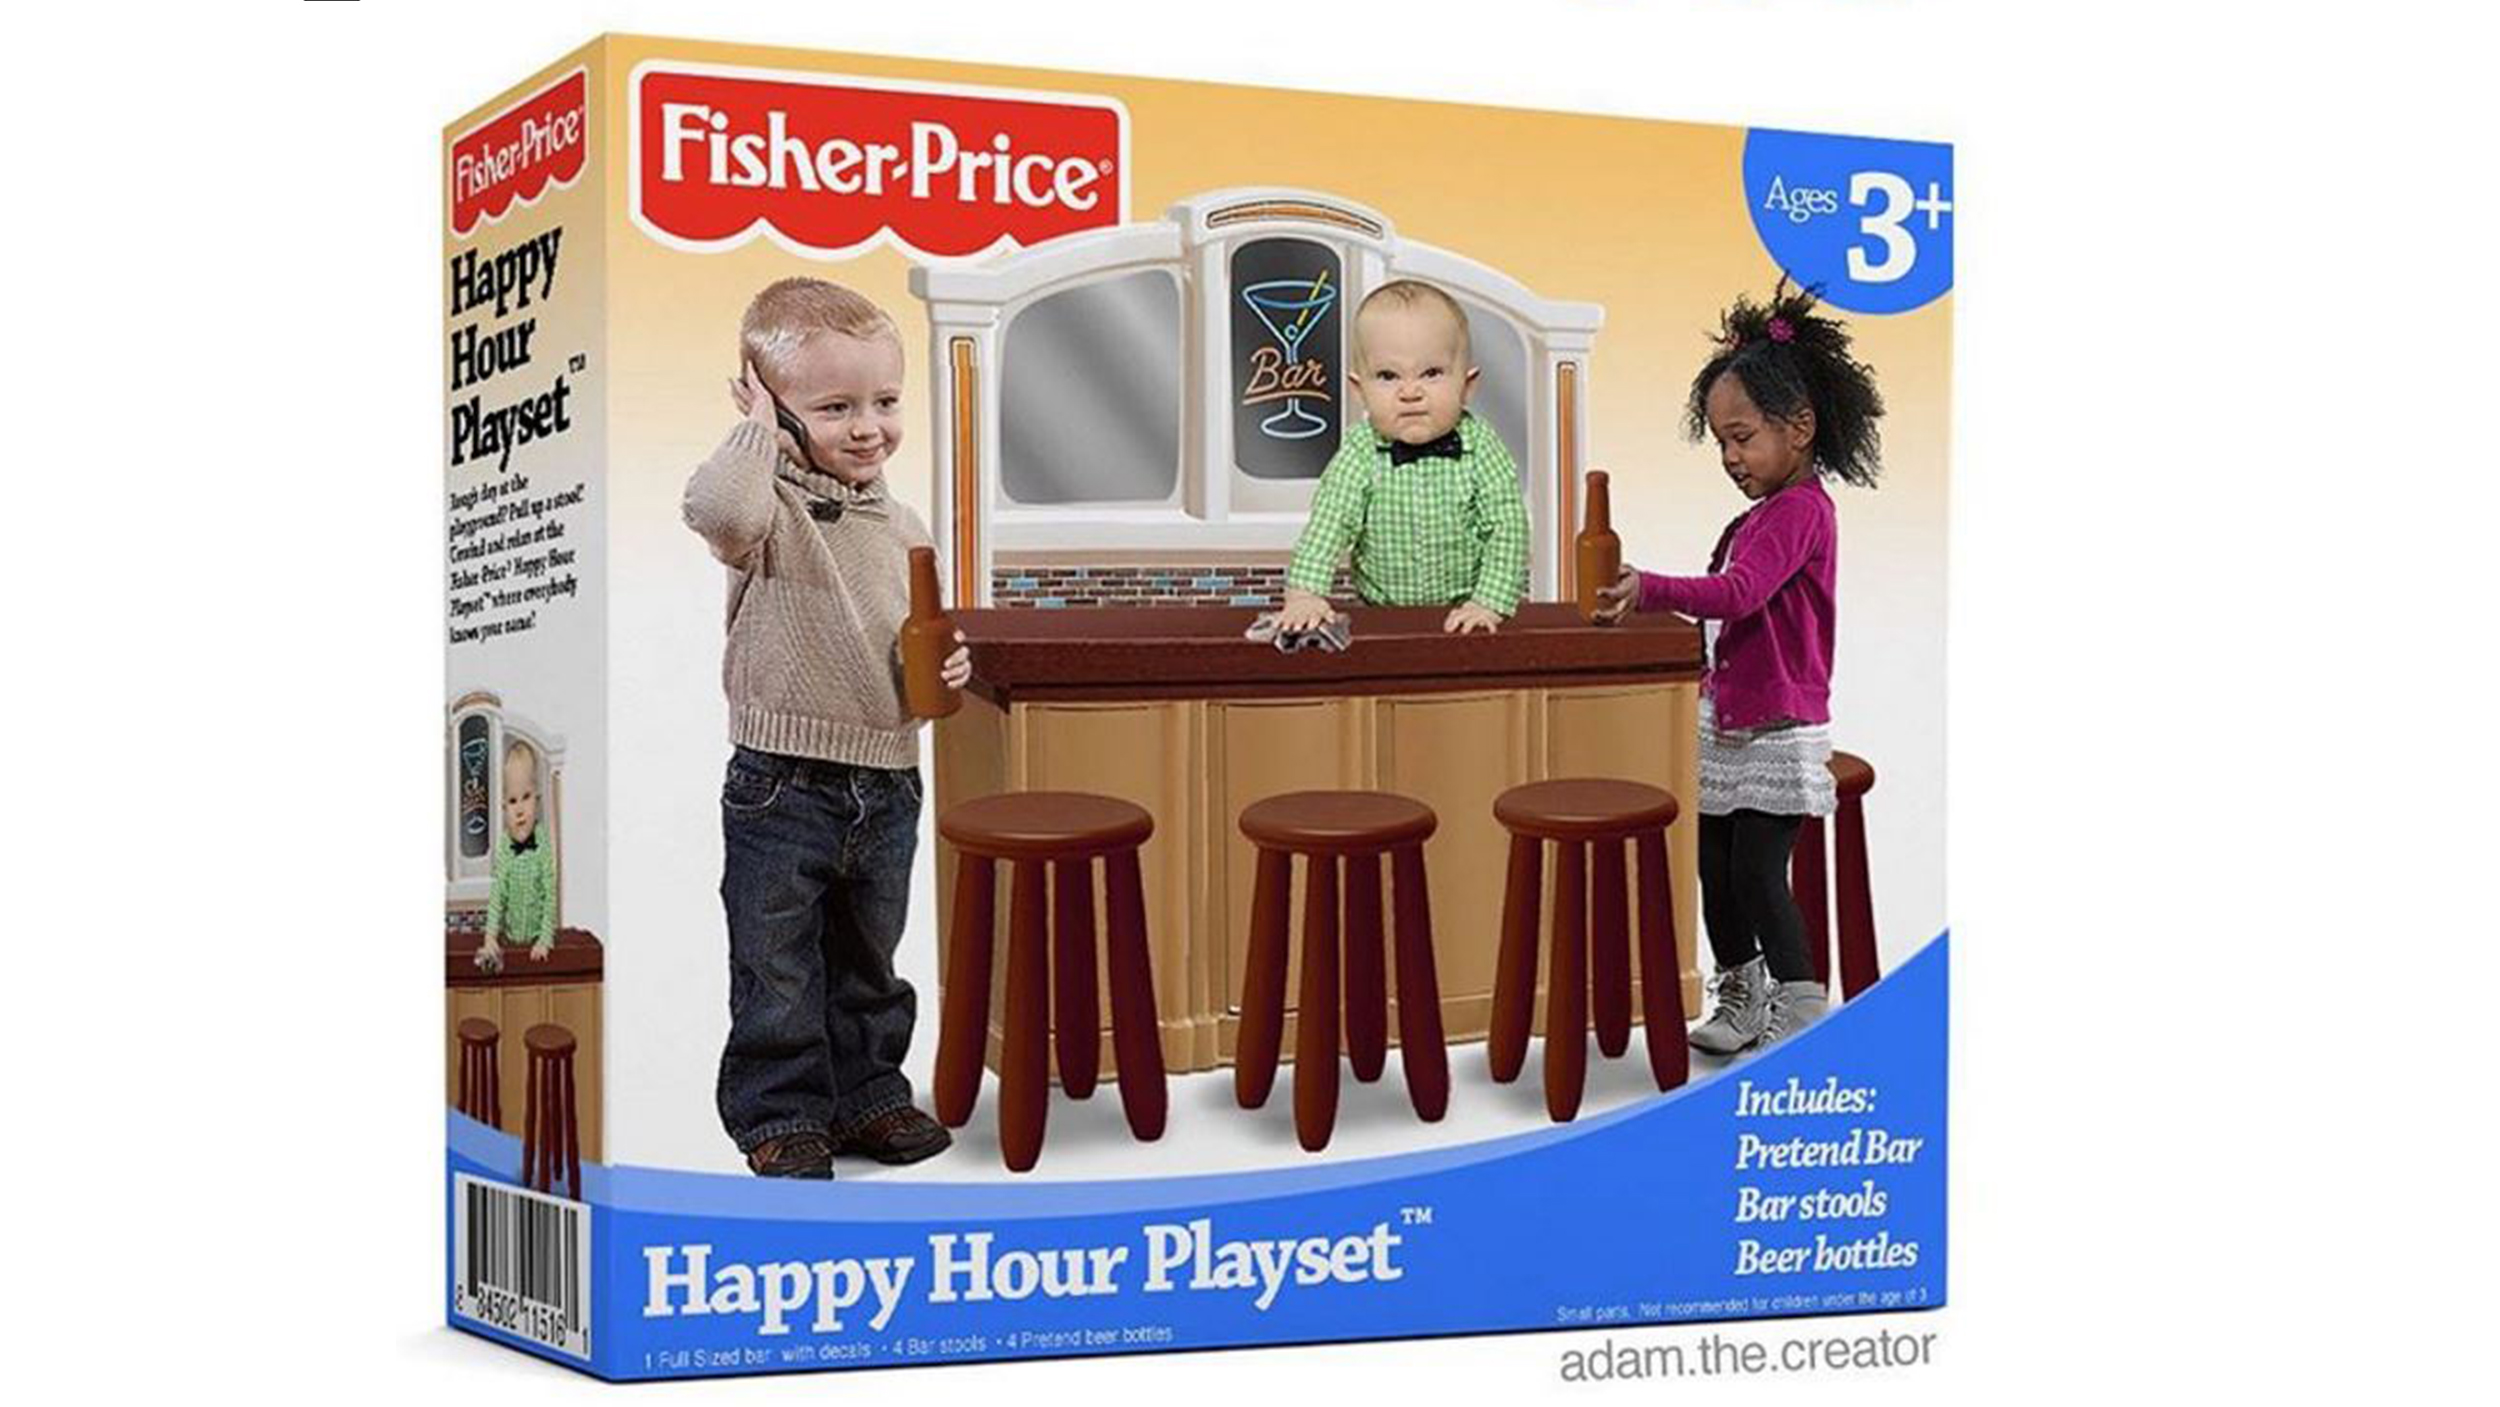 Fisher Price Assures Parents No That Happy Hour Playset